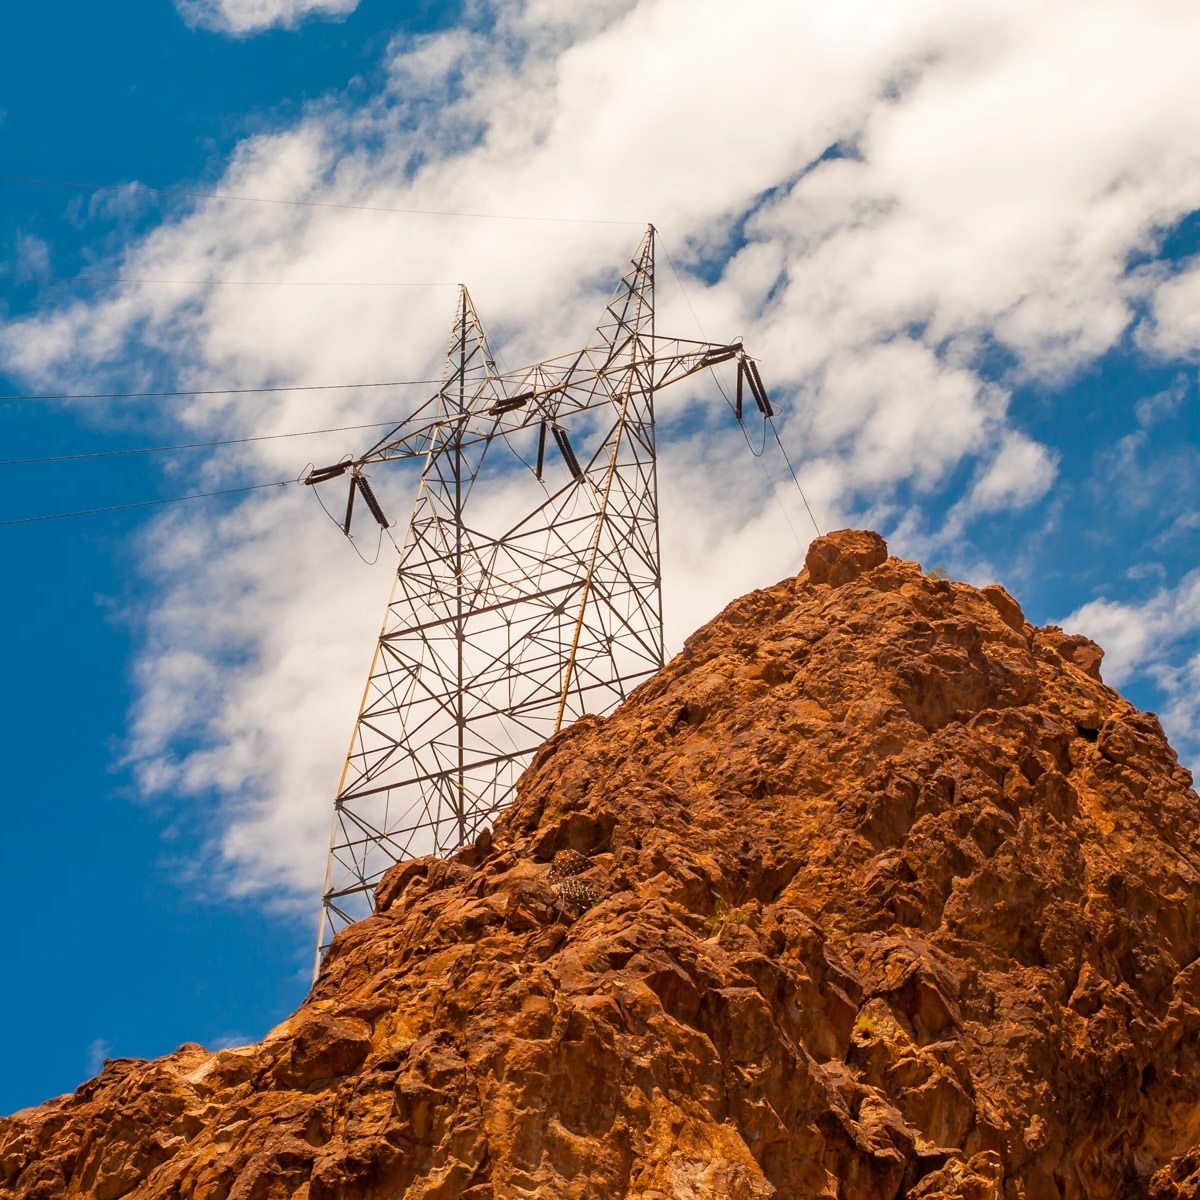 A power line pylon perched atop a rocky outcropping near Hoover Dam, on the Nevada/Arizona border.